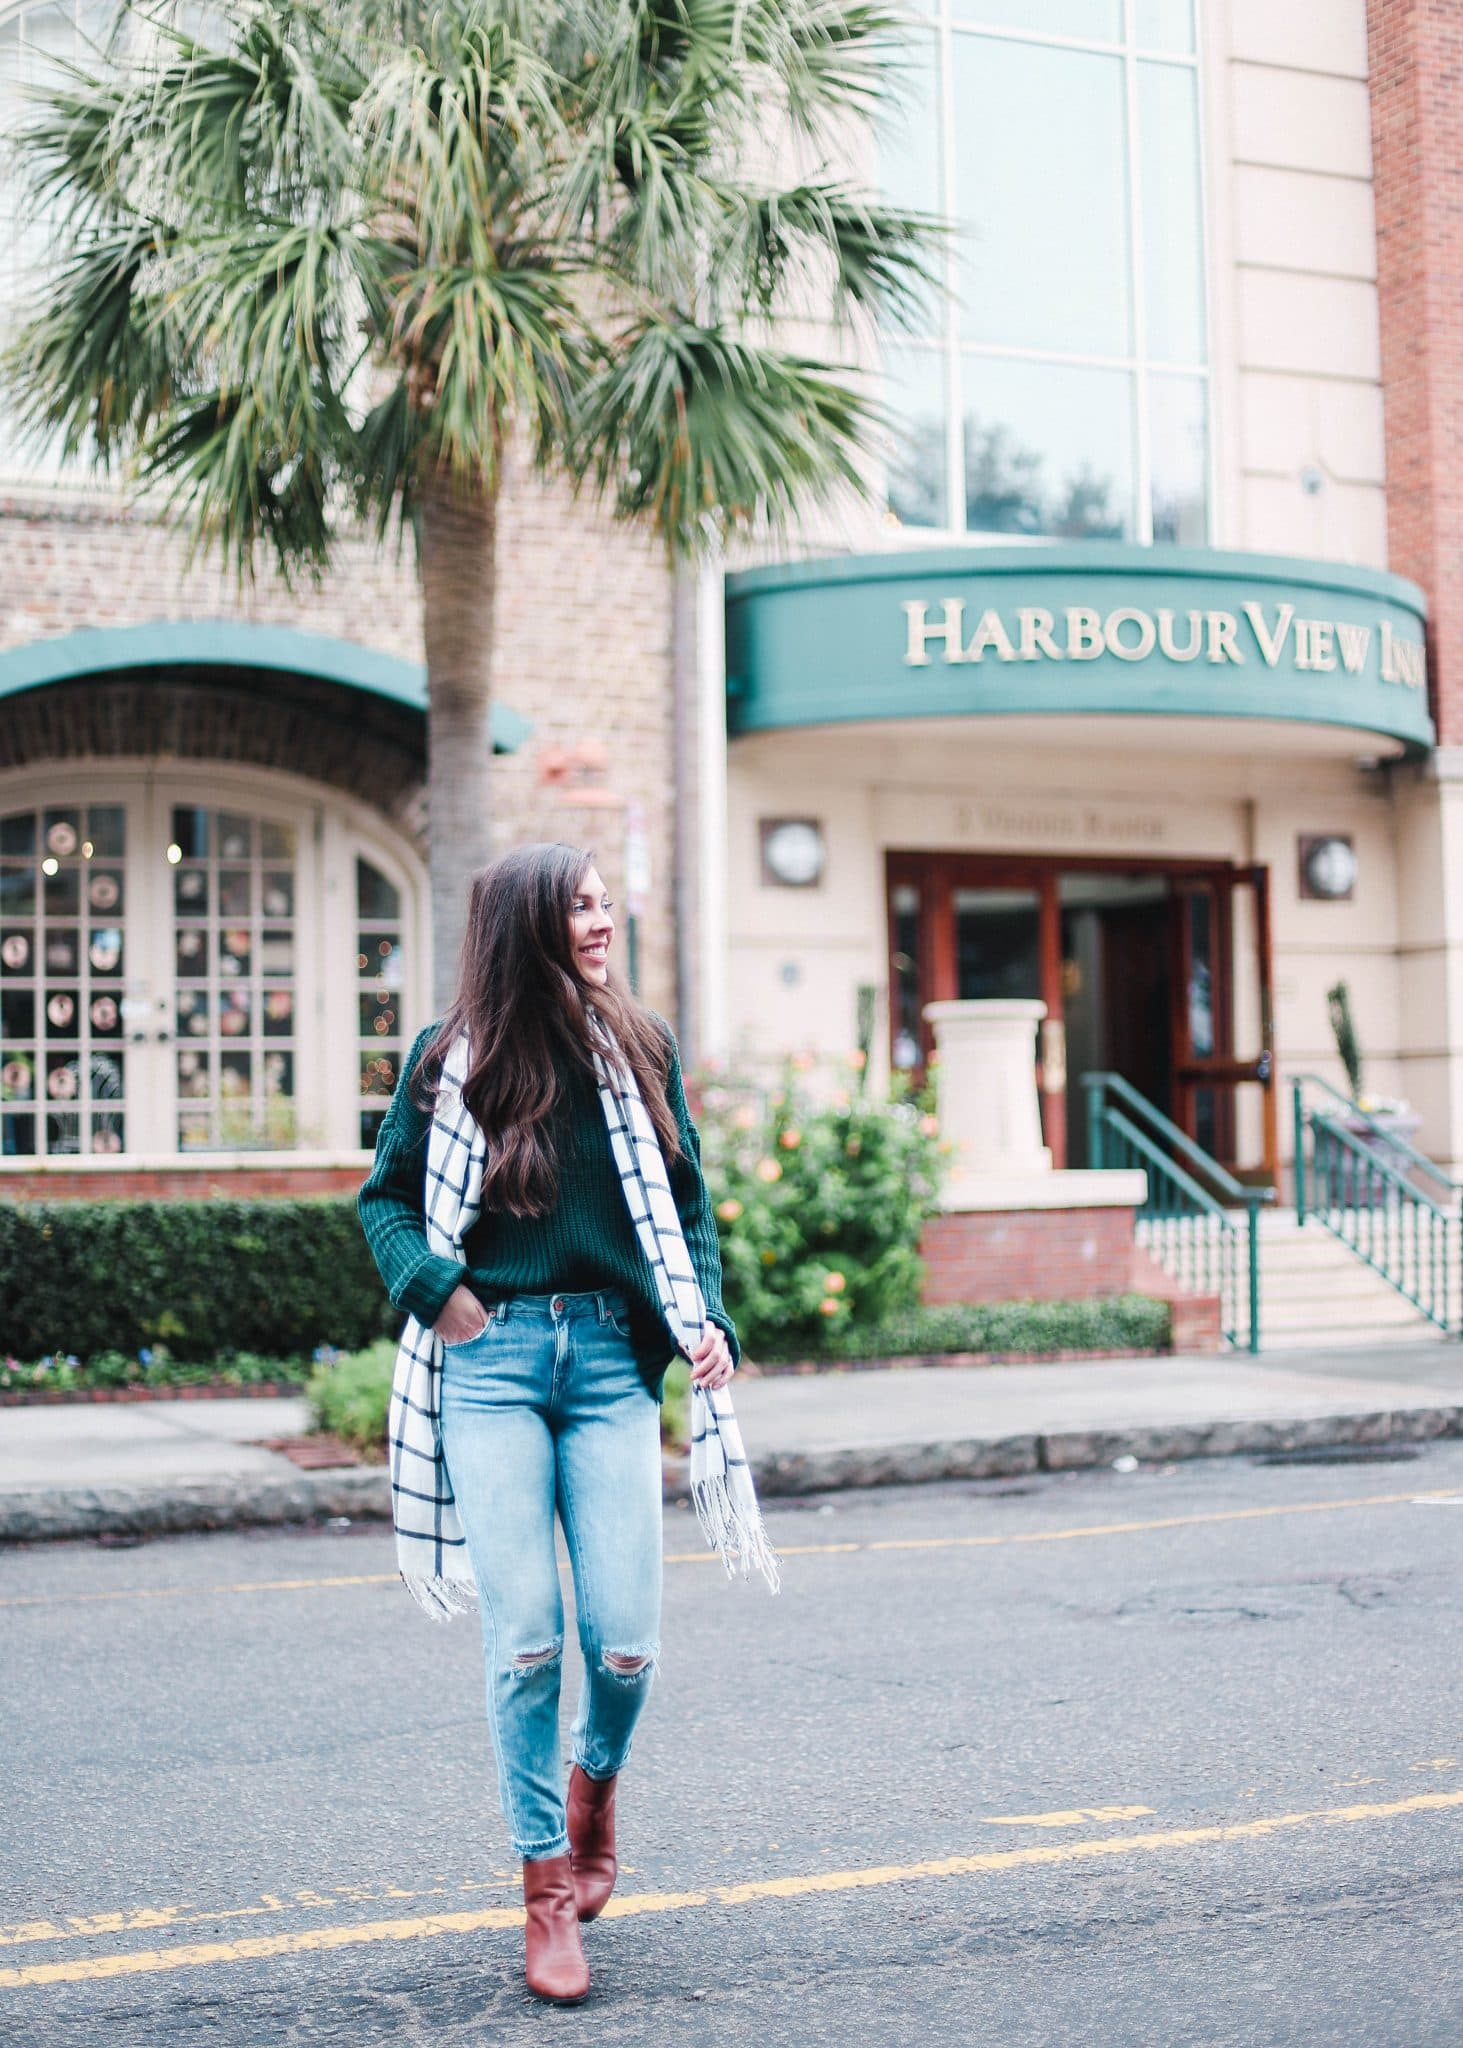 harbourview inn, charleston downtown hotel, pretty in the pines, travel blog